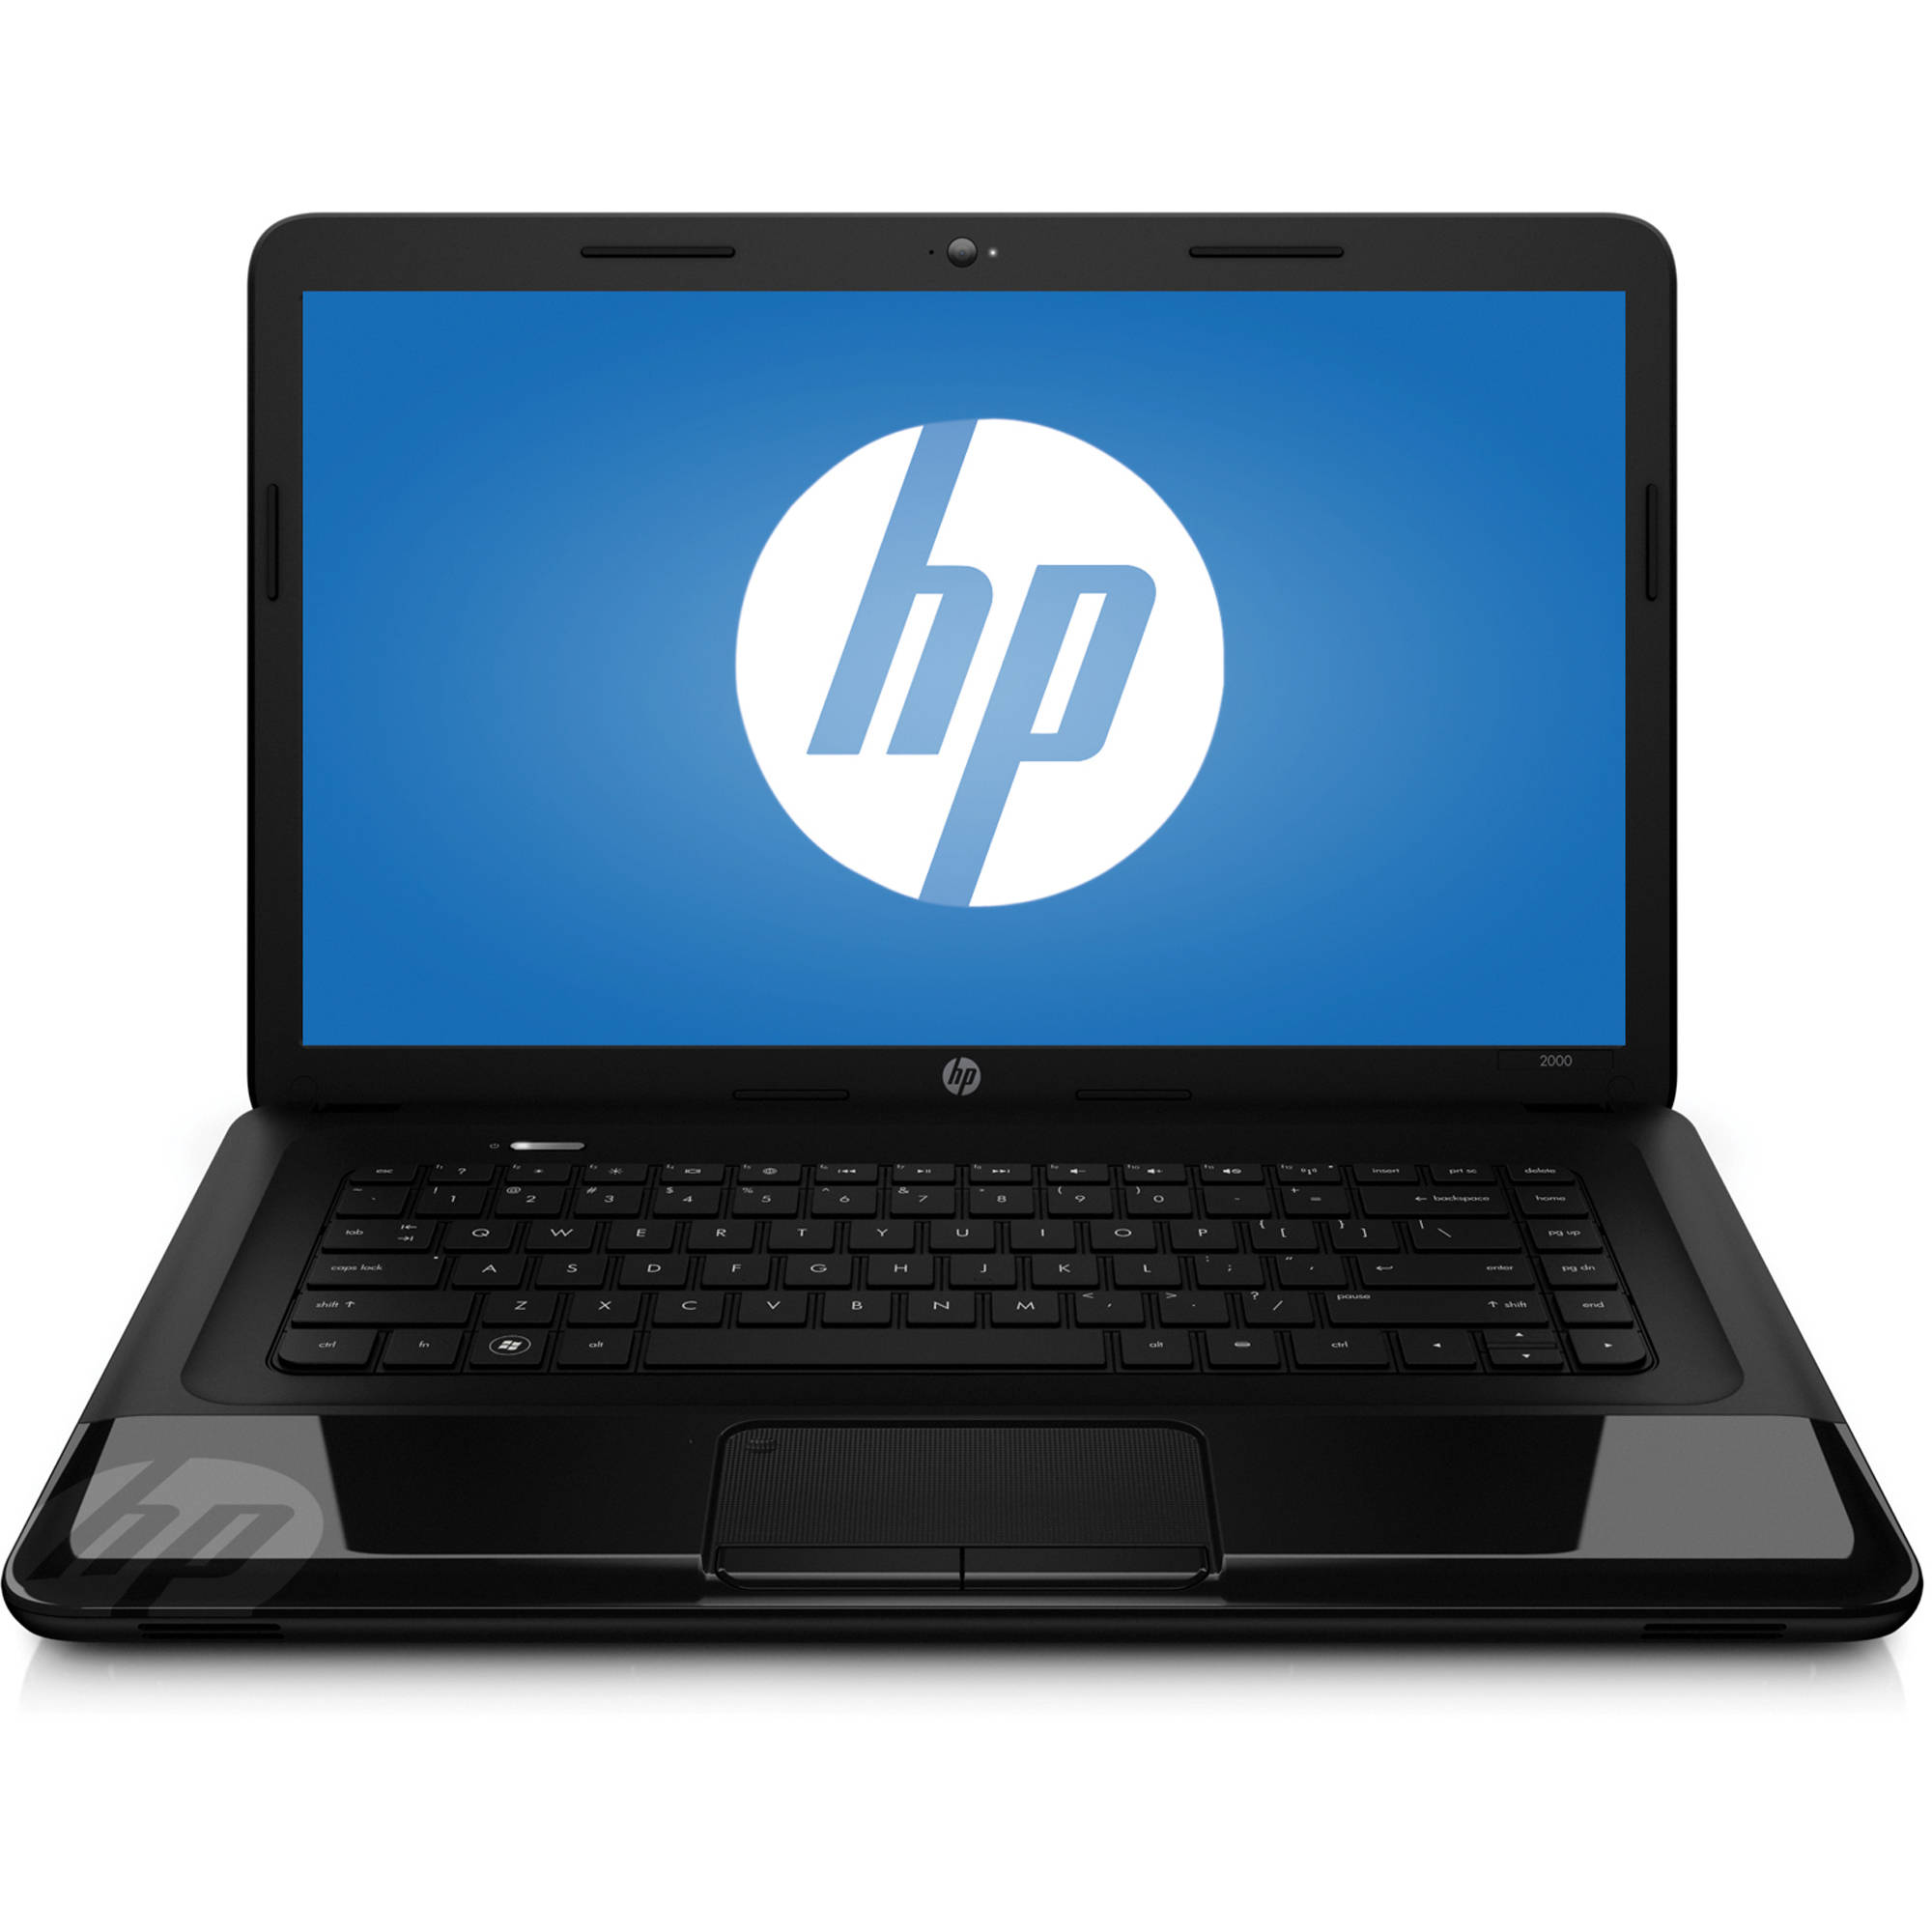 "HP 15.6"" 2000-2b89WM Laptop PC with Intel Core i3-2328M Processor and Windows 8"